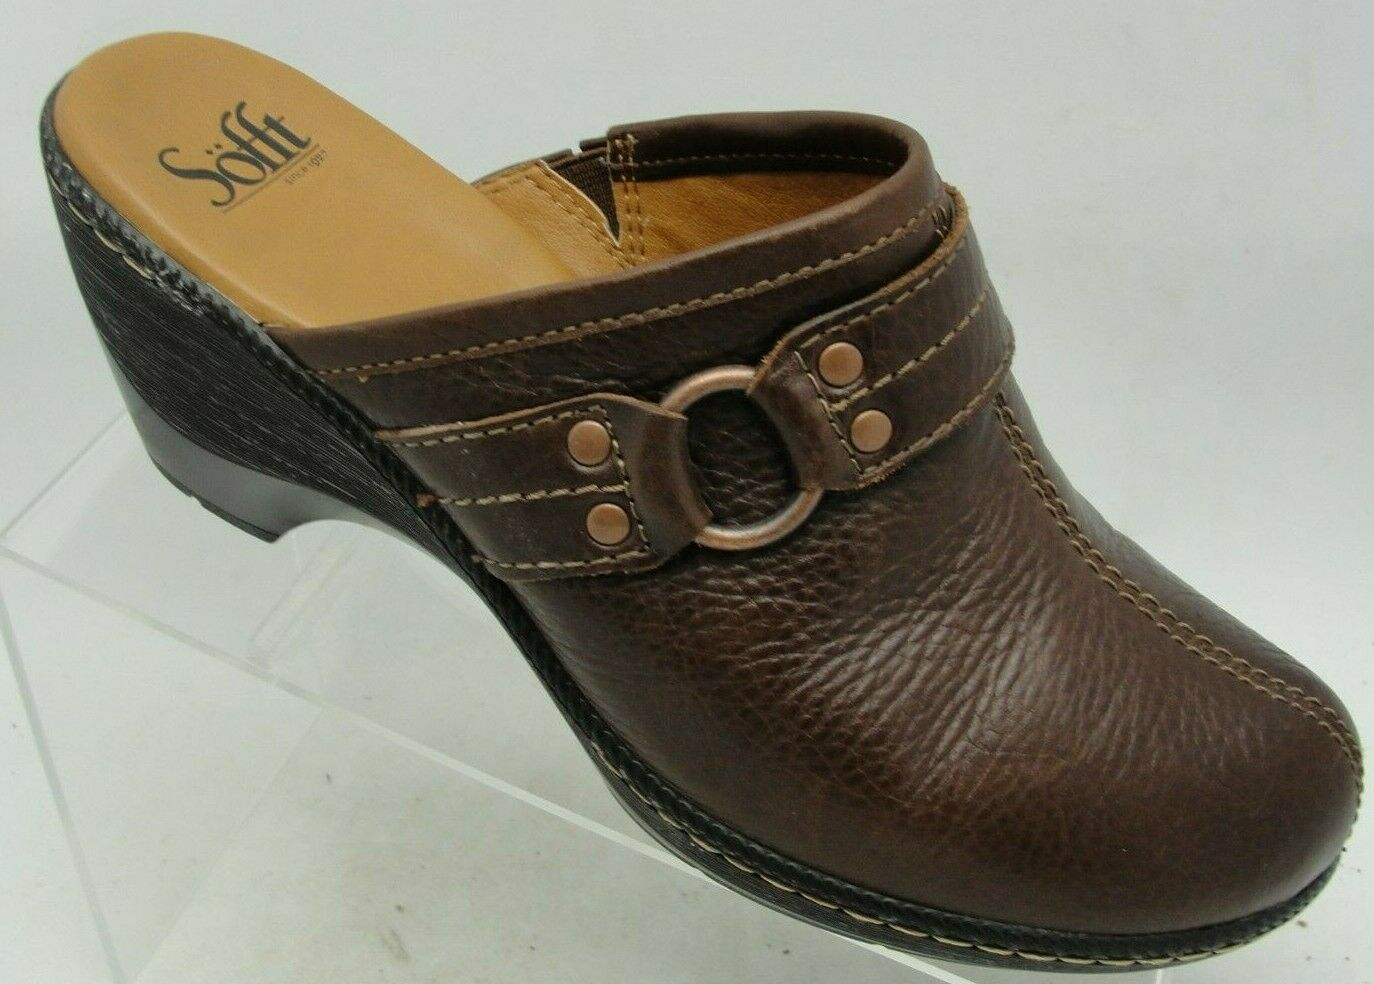 Sofft Size 10M Brown Leather Slip On Mules Clogs Comfort Heels Casual Shoes